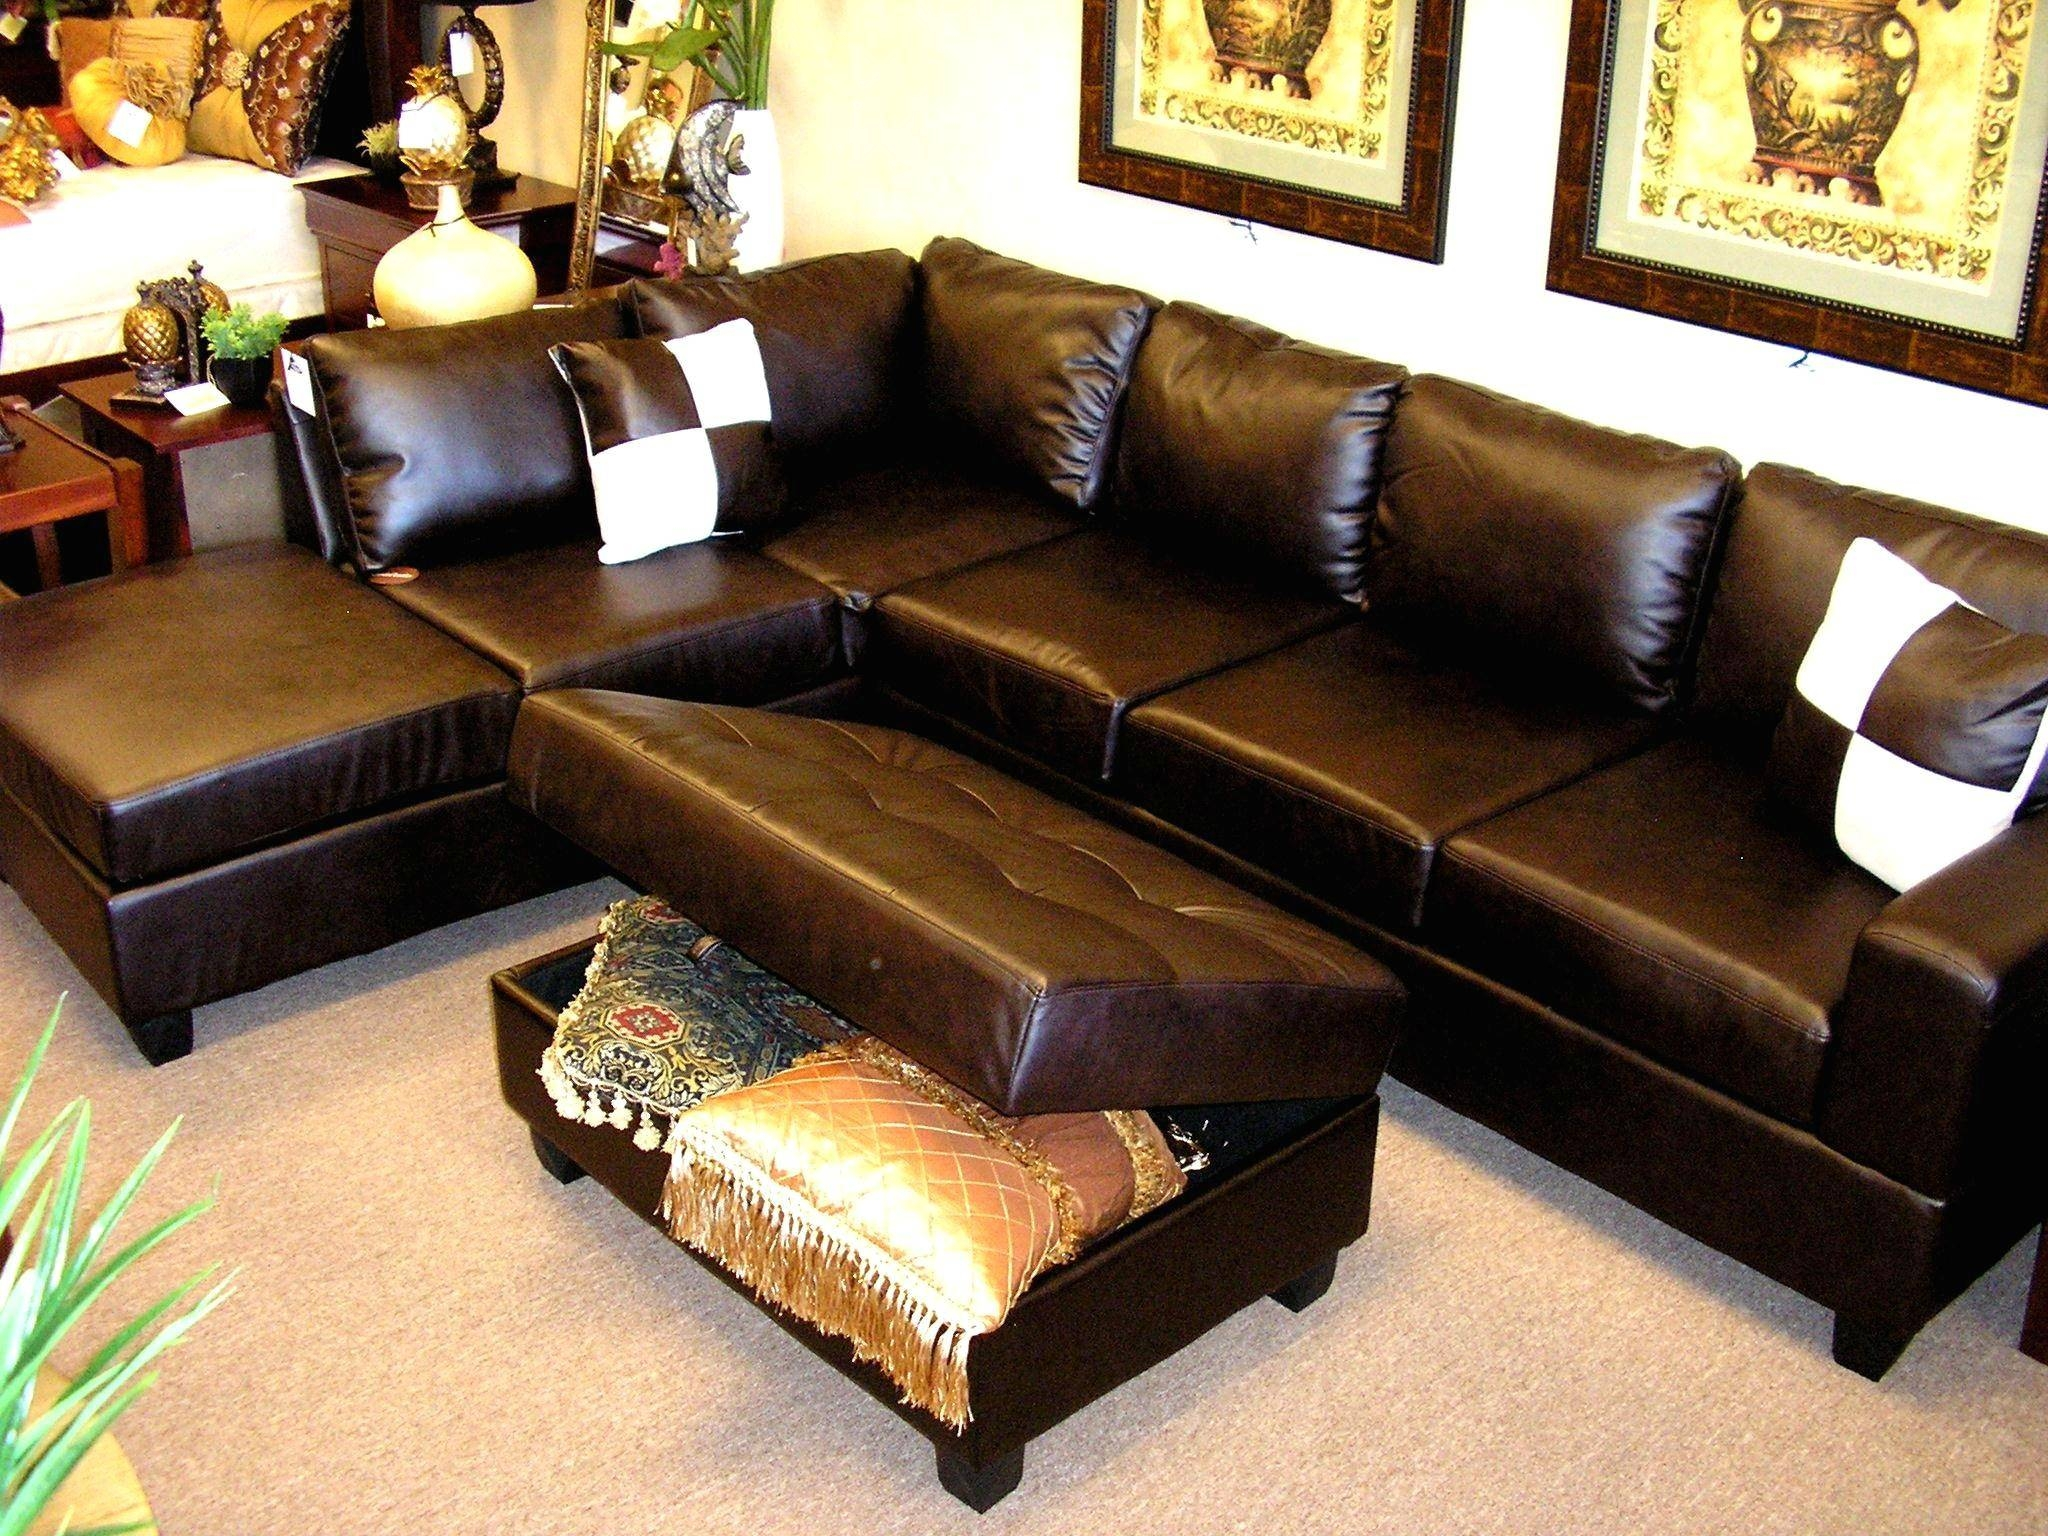 Brown Sectional Couch.top Chocolate Brown Sectional Sofa With regarding Abbyson Living Charlotte Dark Brown Sectional Sofa and Ottoman (Image 9 of 30)